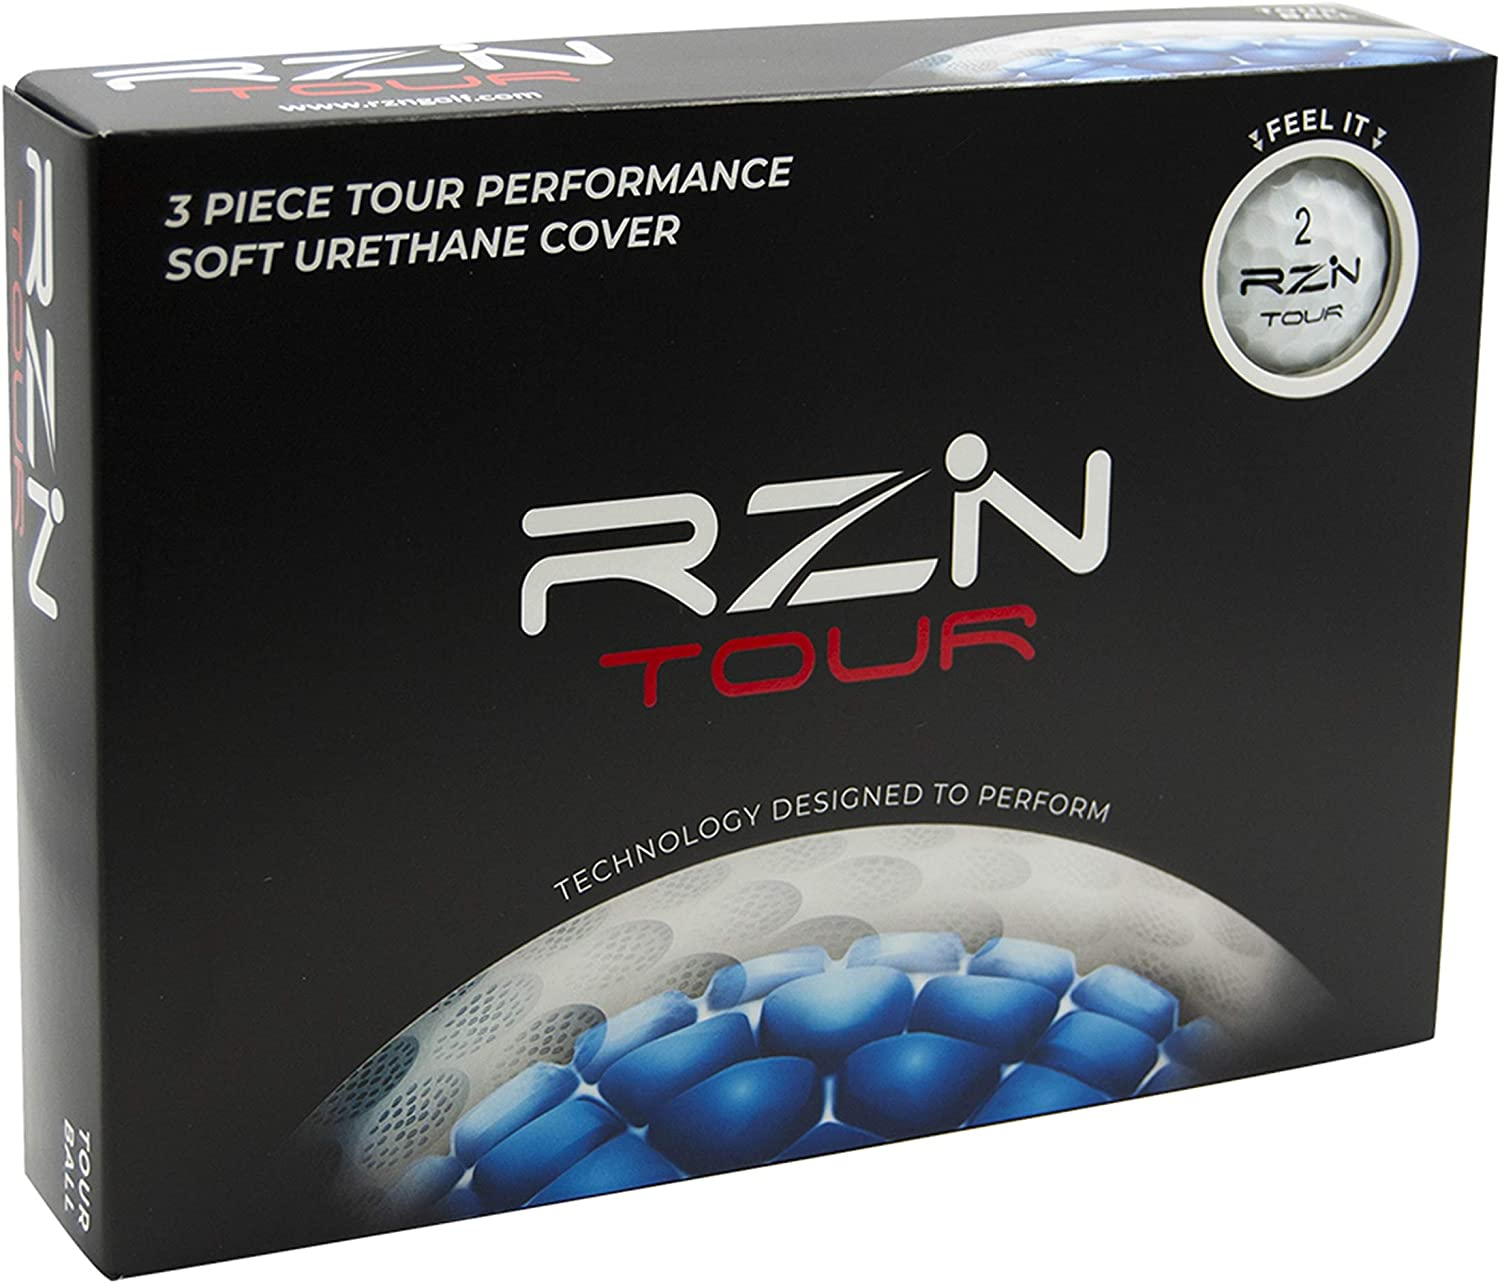 RZN Technology Helped Tour Daily bargain sale Pros Claim T Victories Genuine Free Shipping 50 Around Over